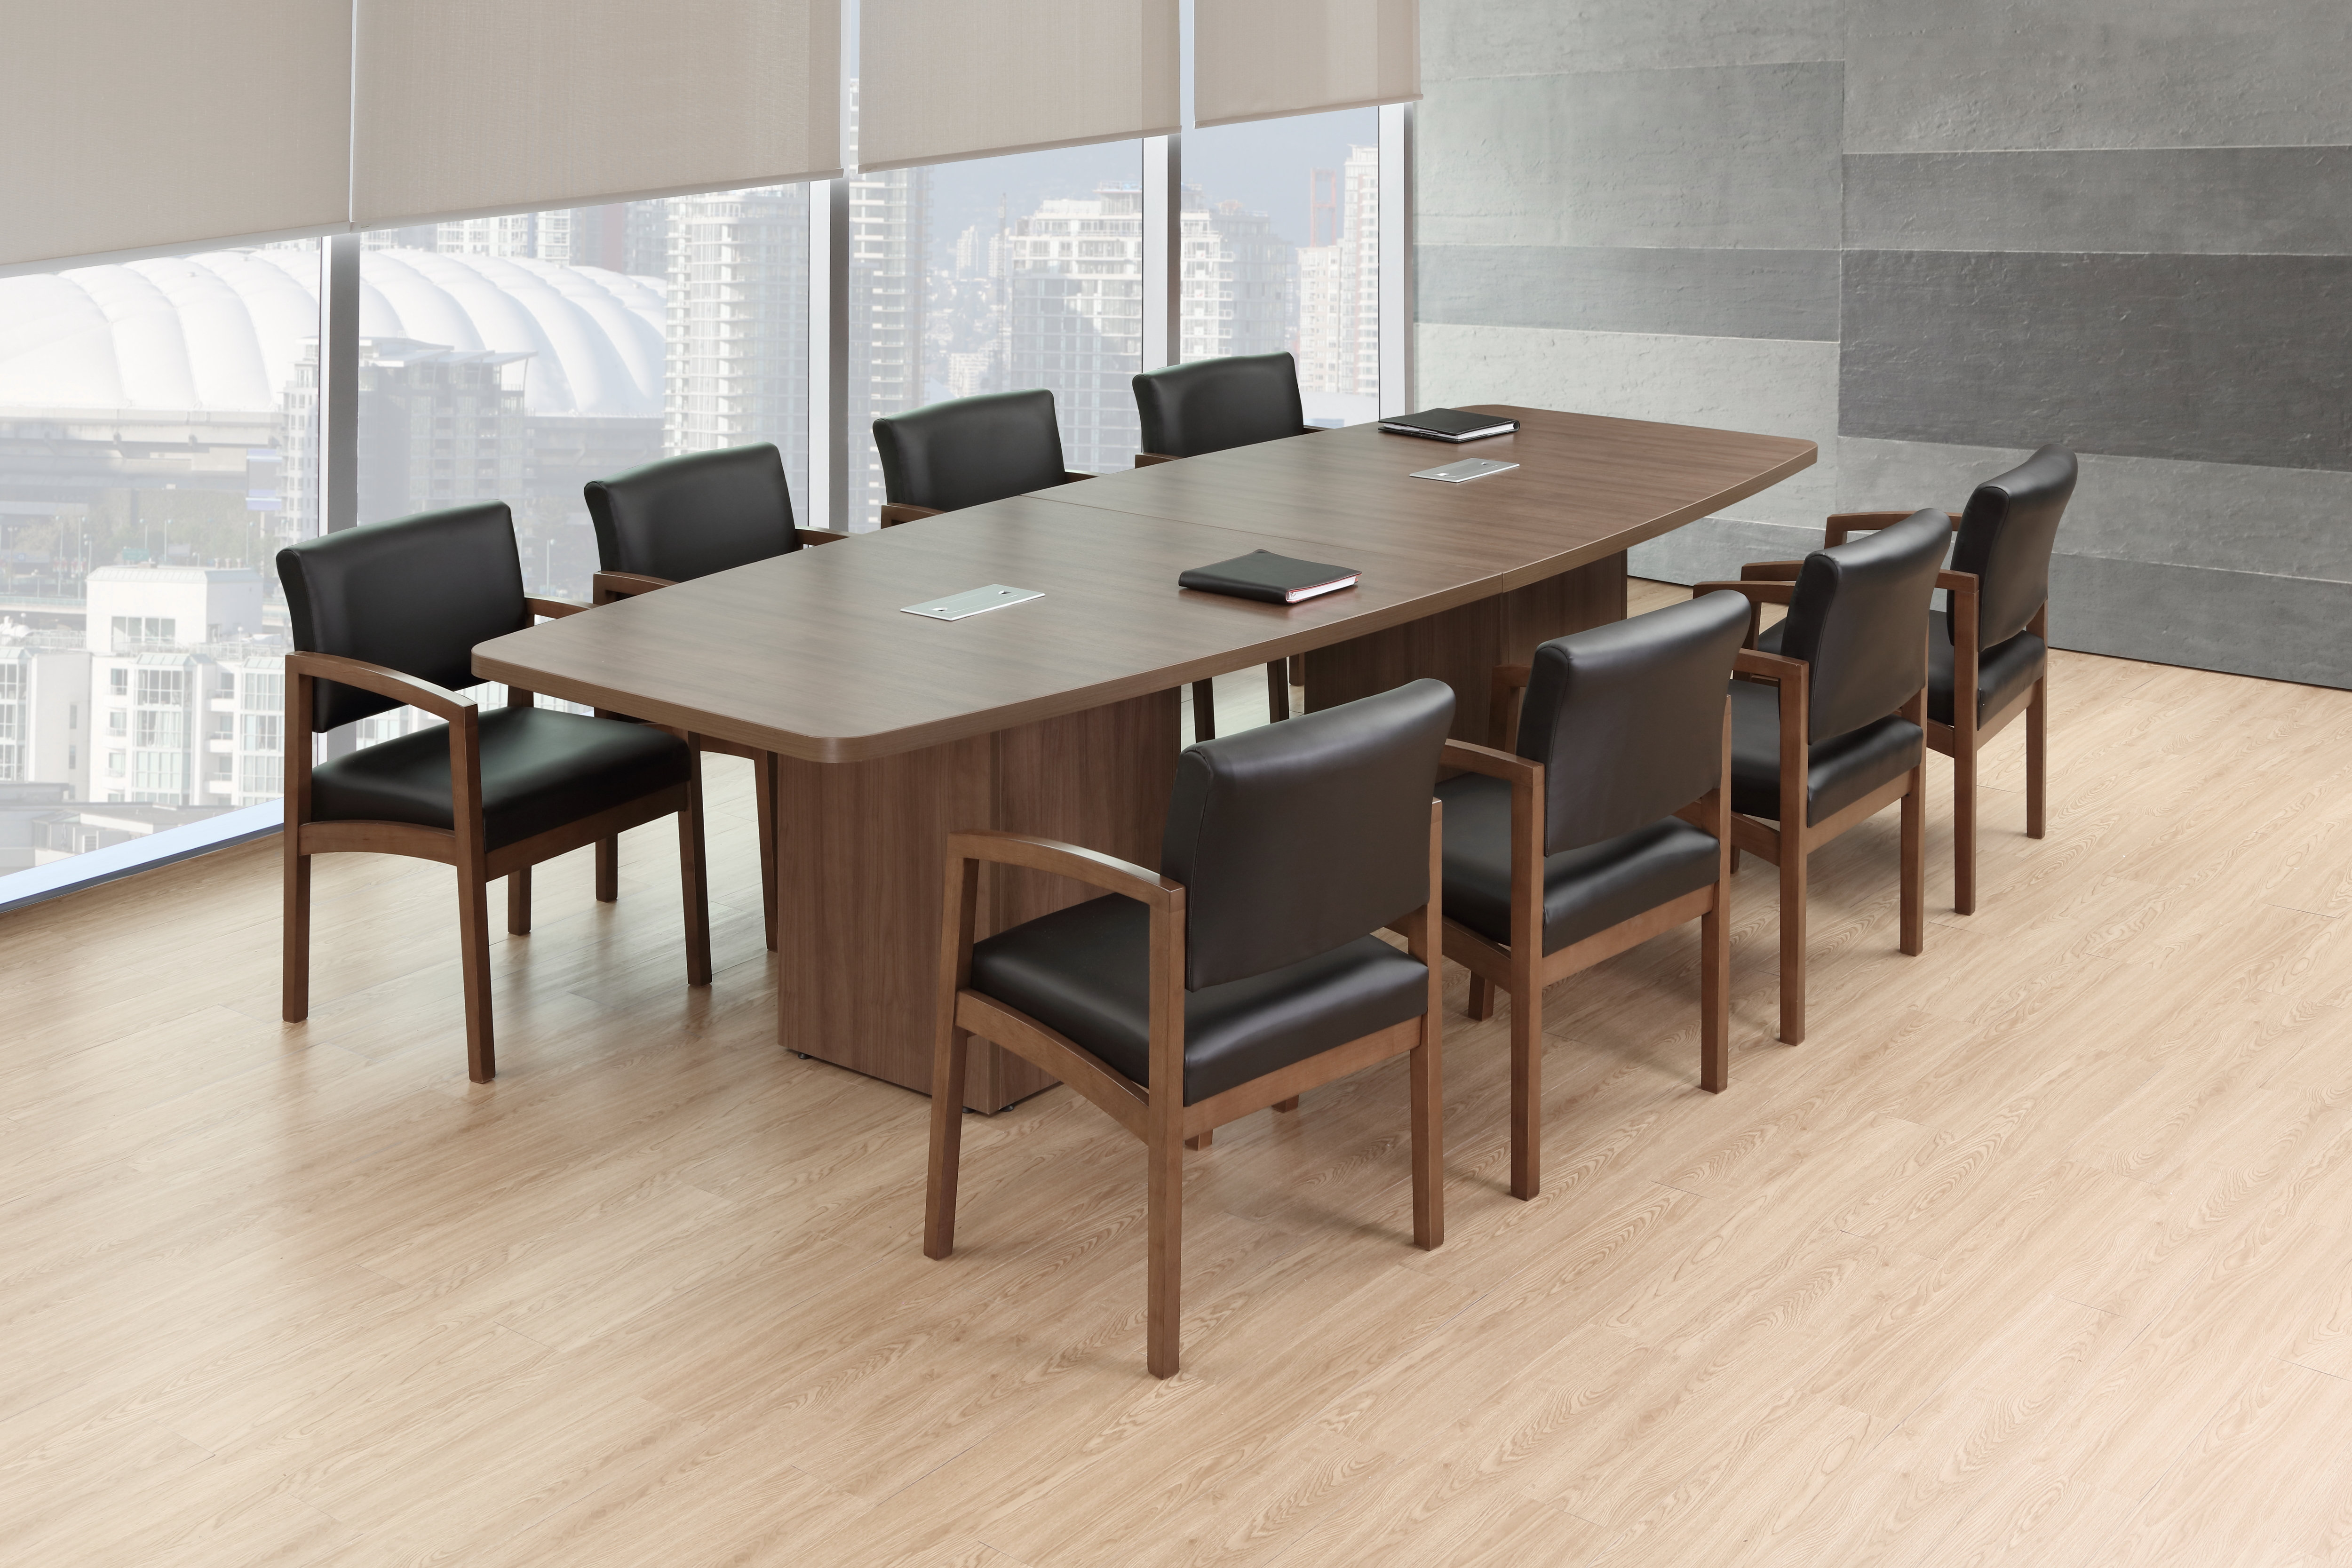 Performance Boat Shaped Laminate Conference Tables With